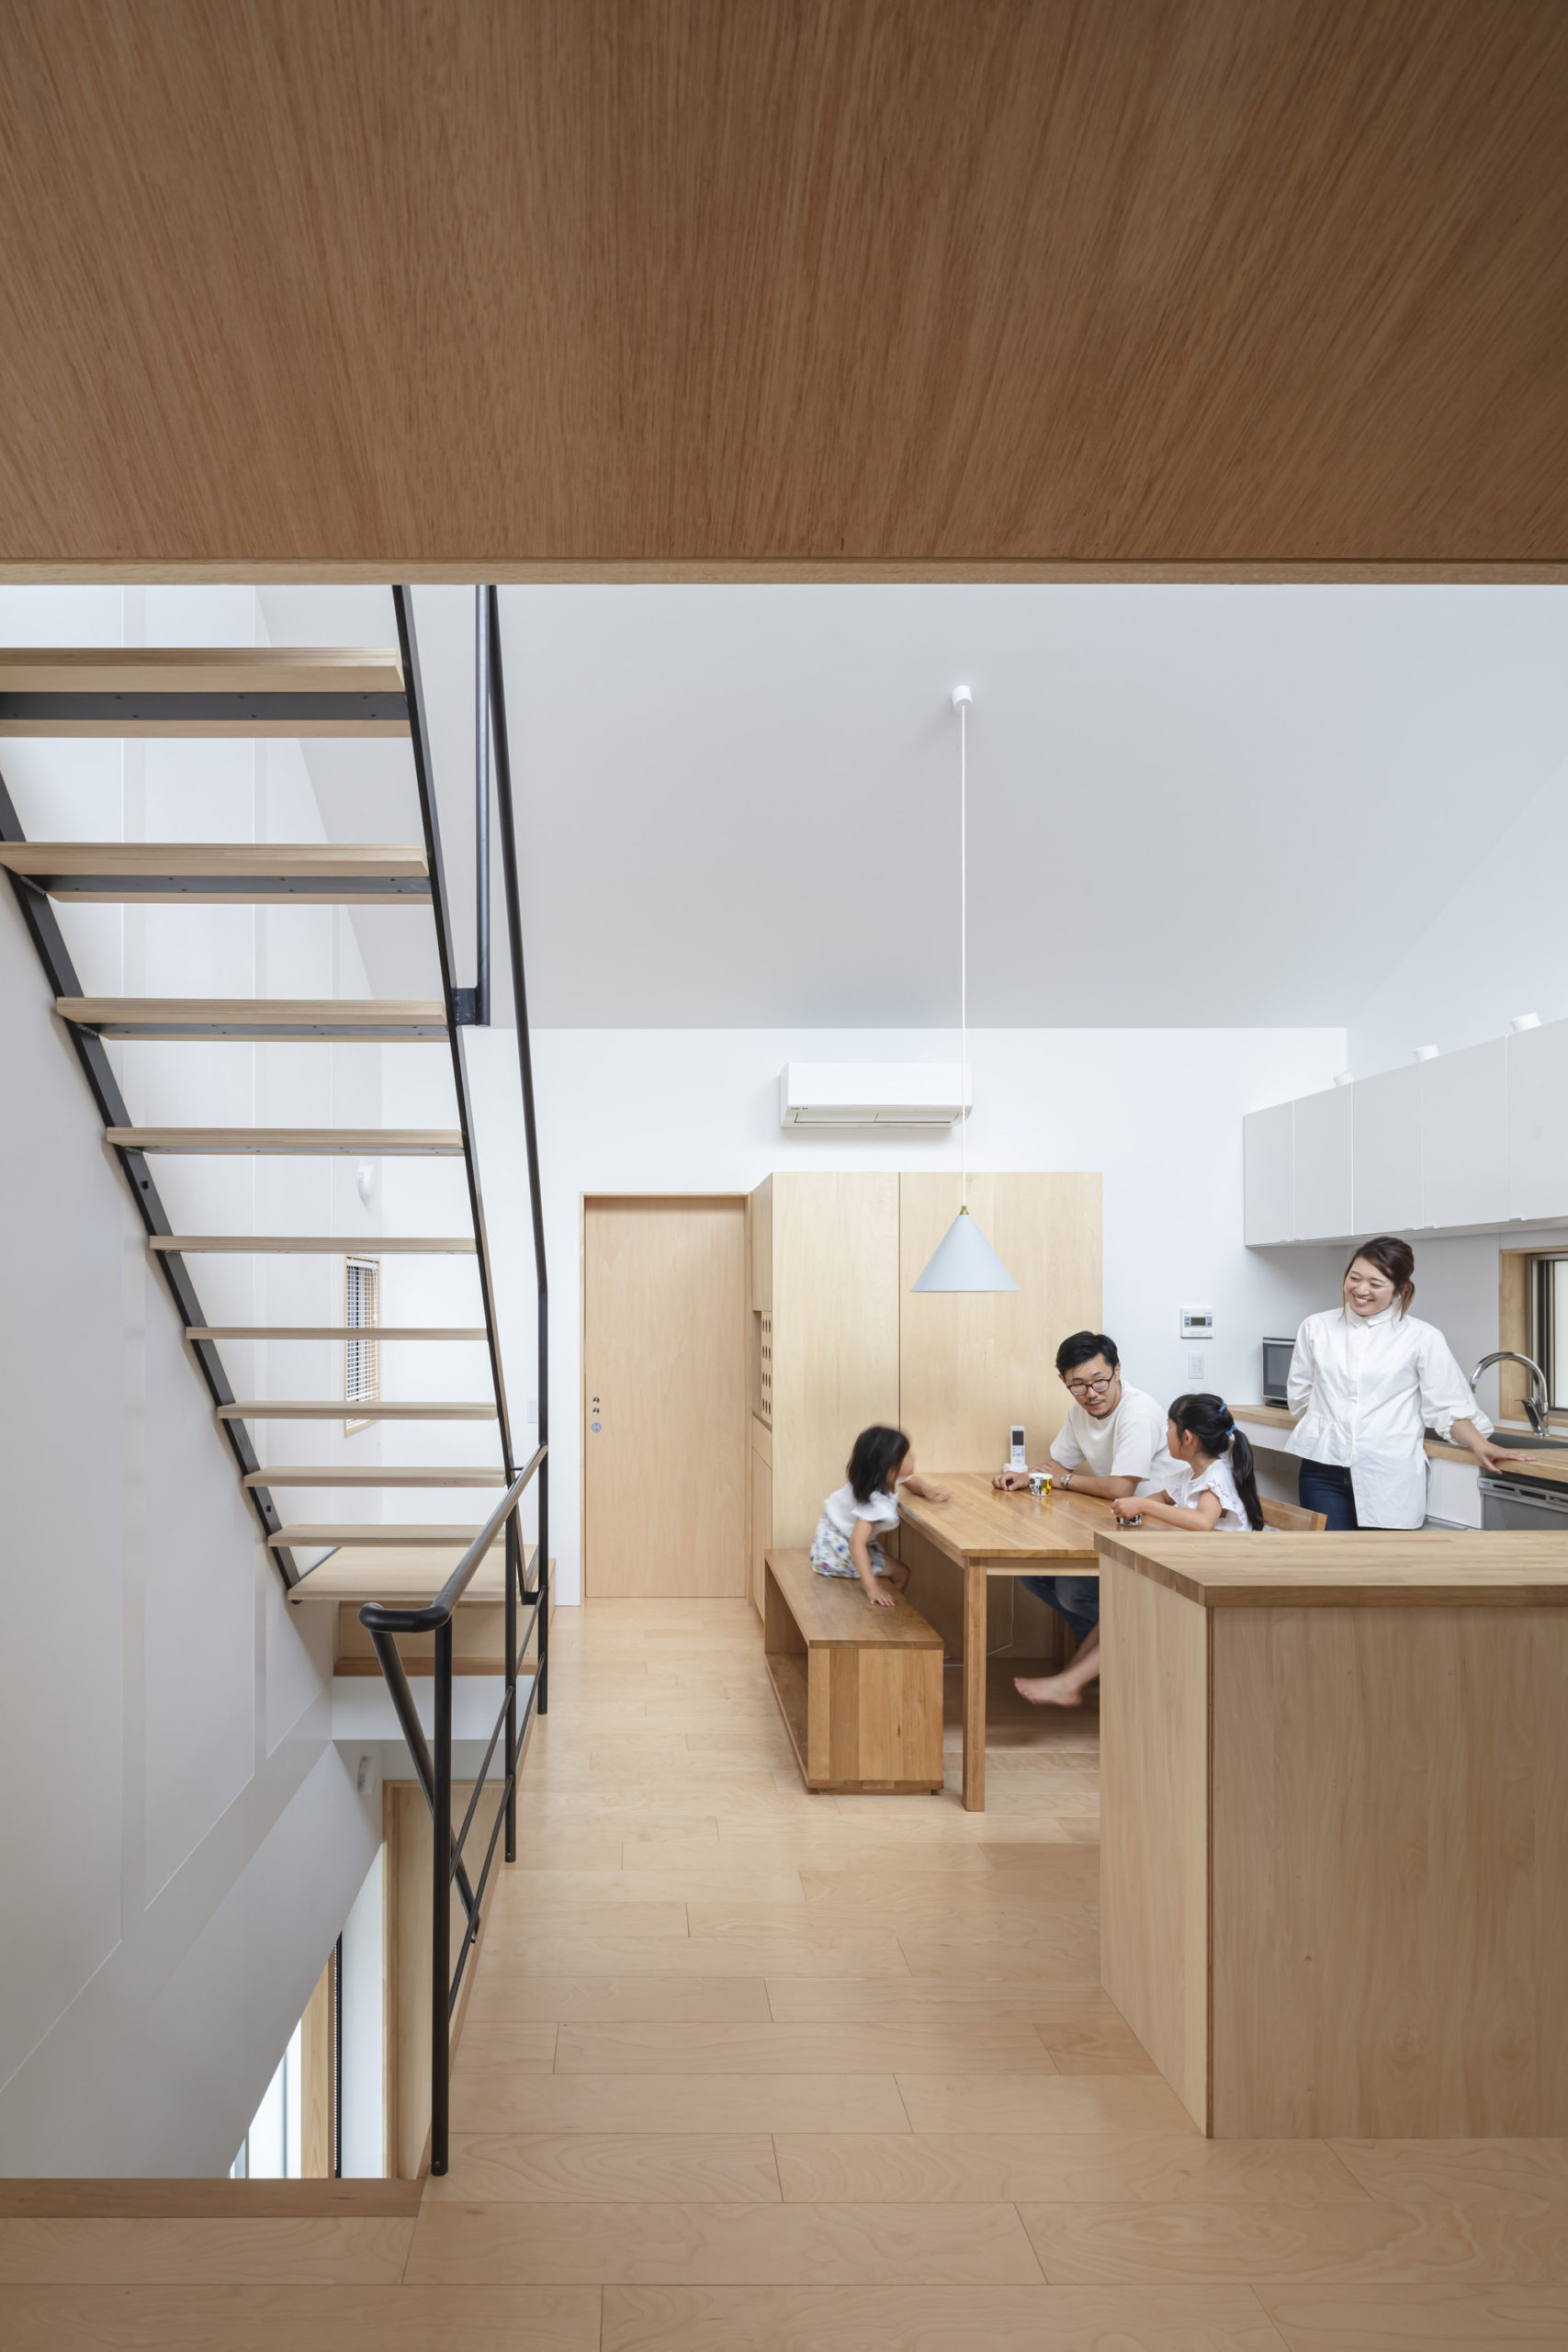 Hisashi Ikeda Designs Compact Japanese House As A Sum Of Small Parts That References Traditional Machiya Style De51gn